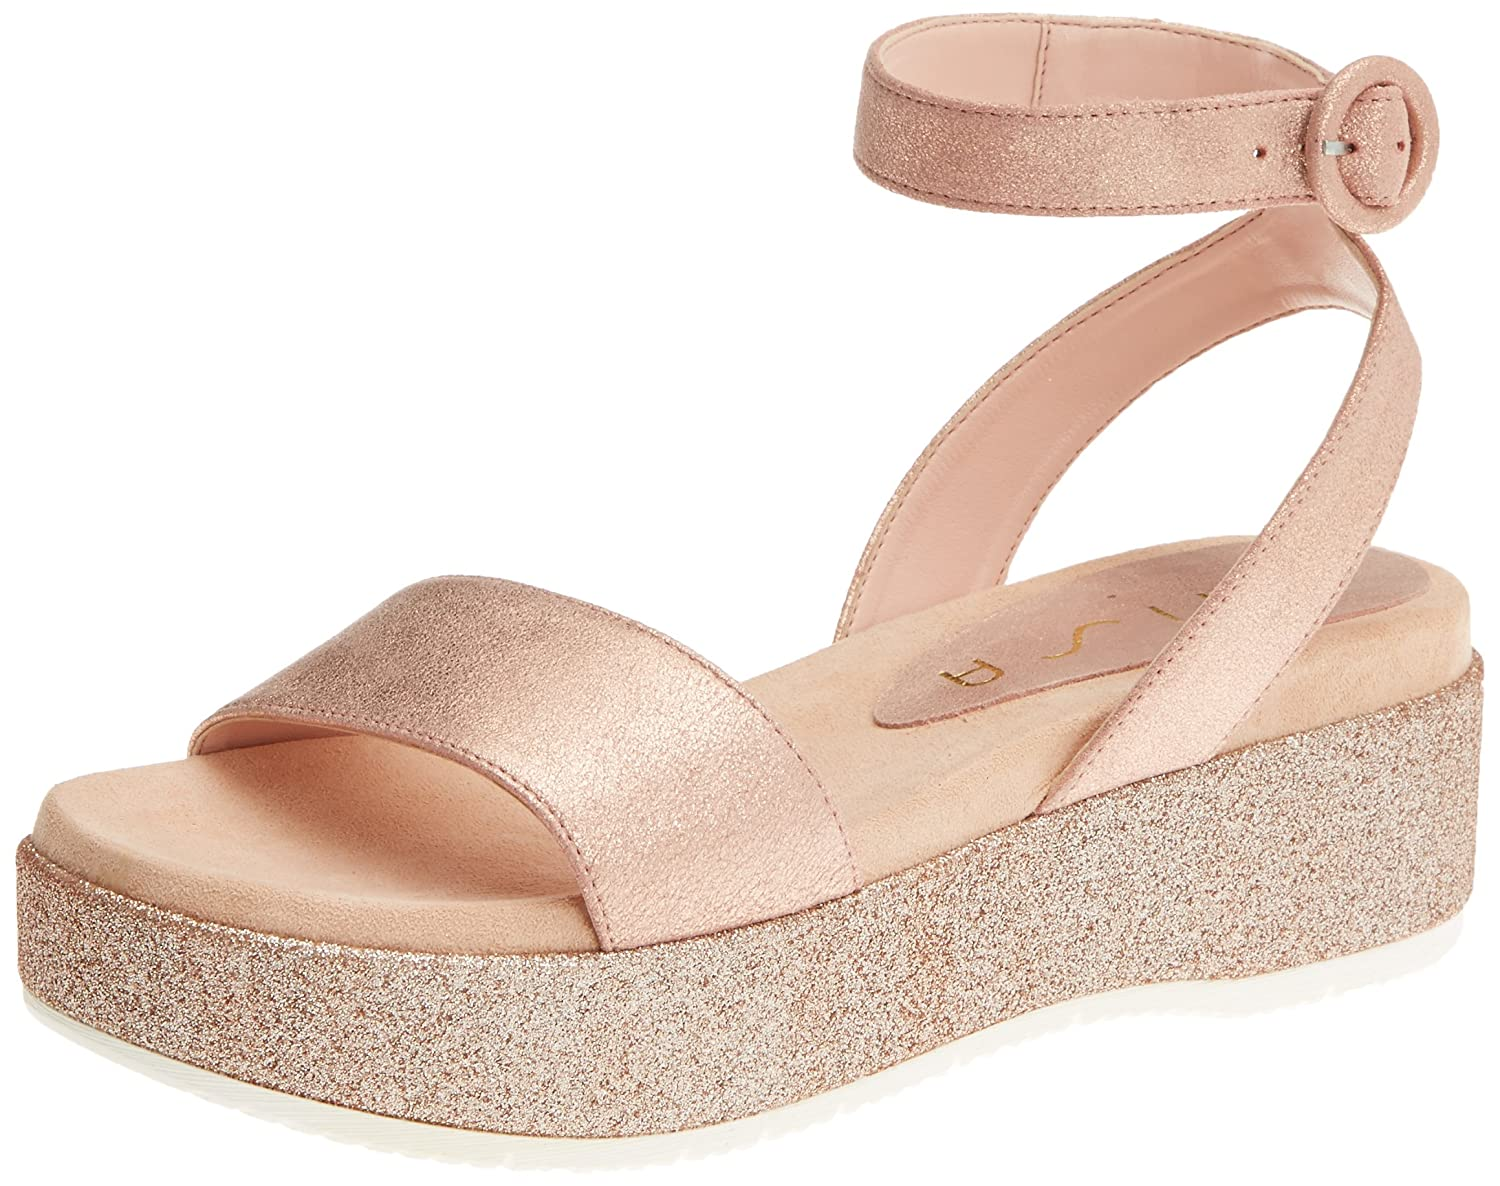 Unisa Bueno_MTS, Bout Sandales Bout Ouvert (Ballet) Femme Rose Bueno_MTS, (Ballet) 6388a52 - piero.space